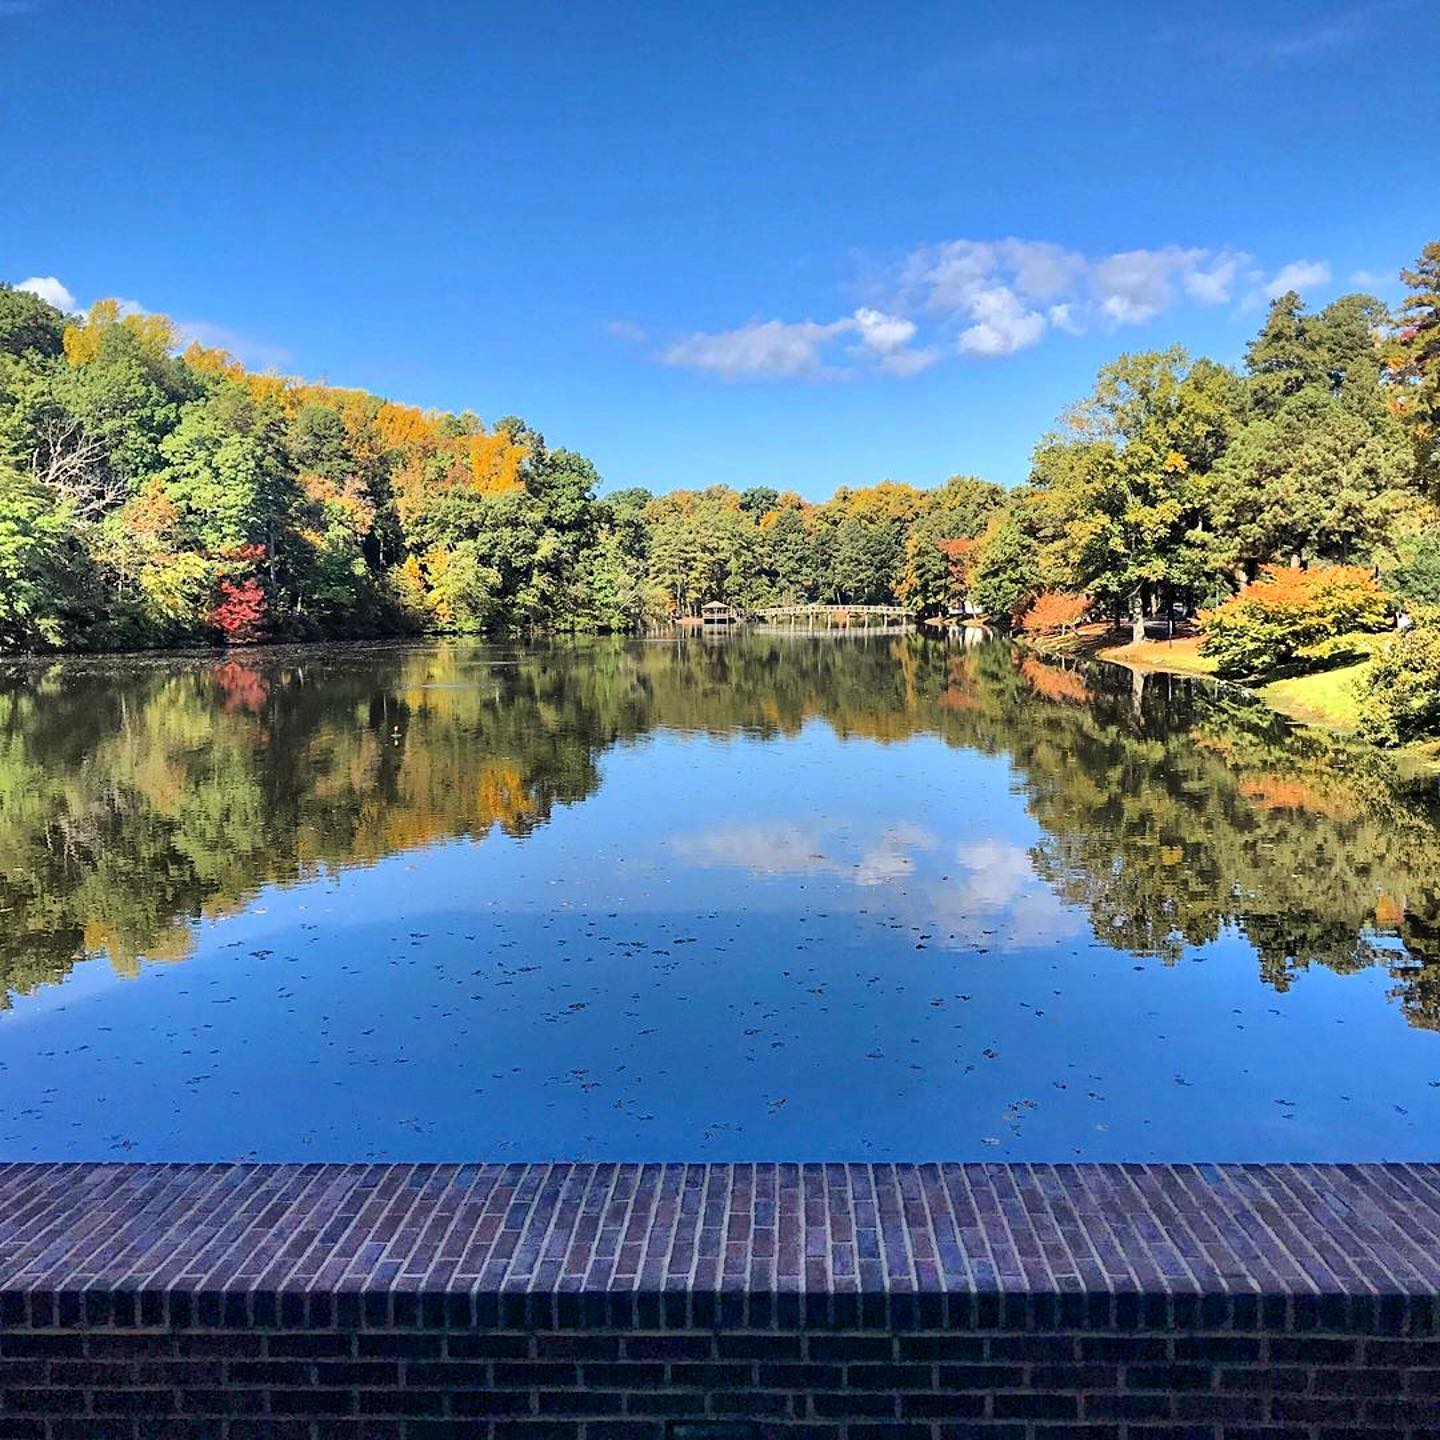 Polls close in just a few hours — so if you haven't voted, get out there and vote! And if you have, take a breath, relax, and enjoy this calming view of Westhampton Lake.  📸: @urdining